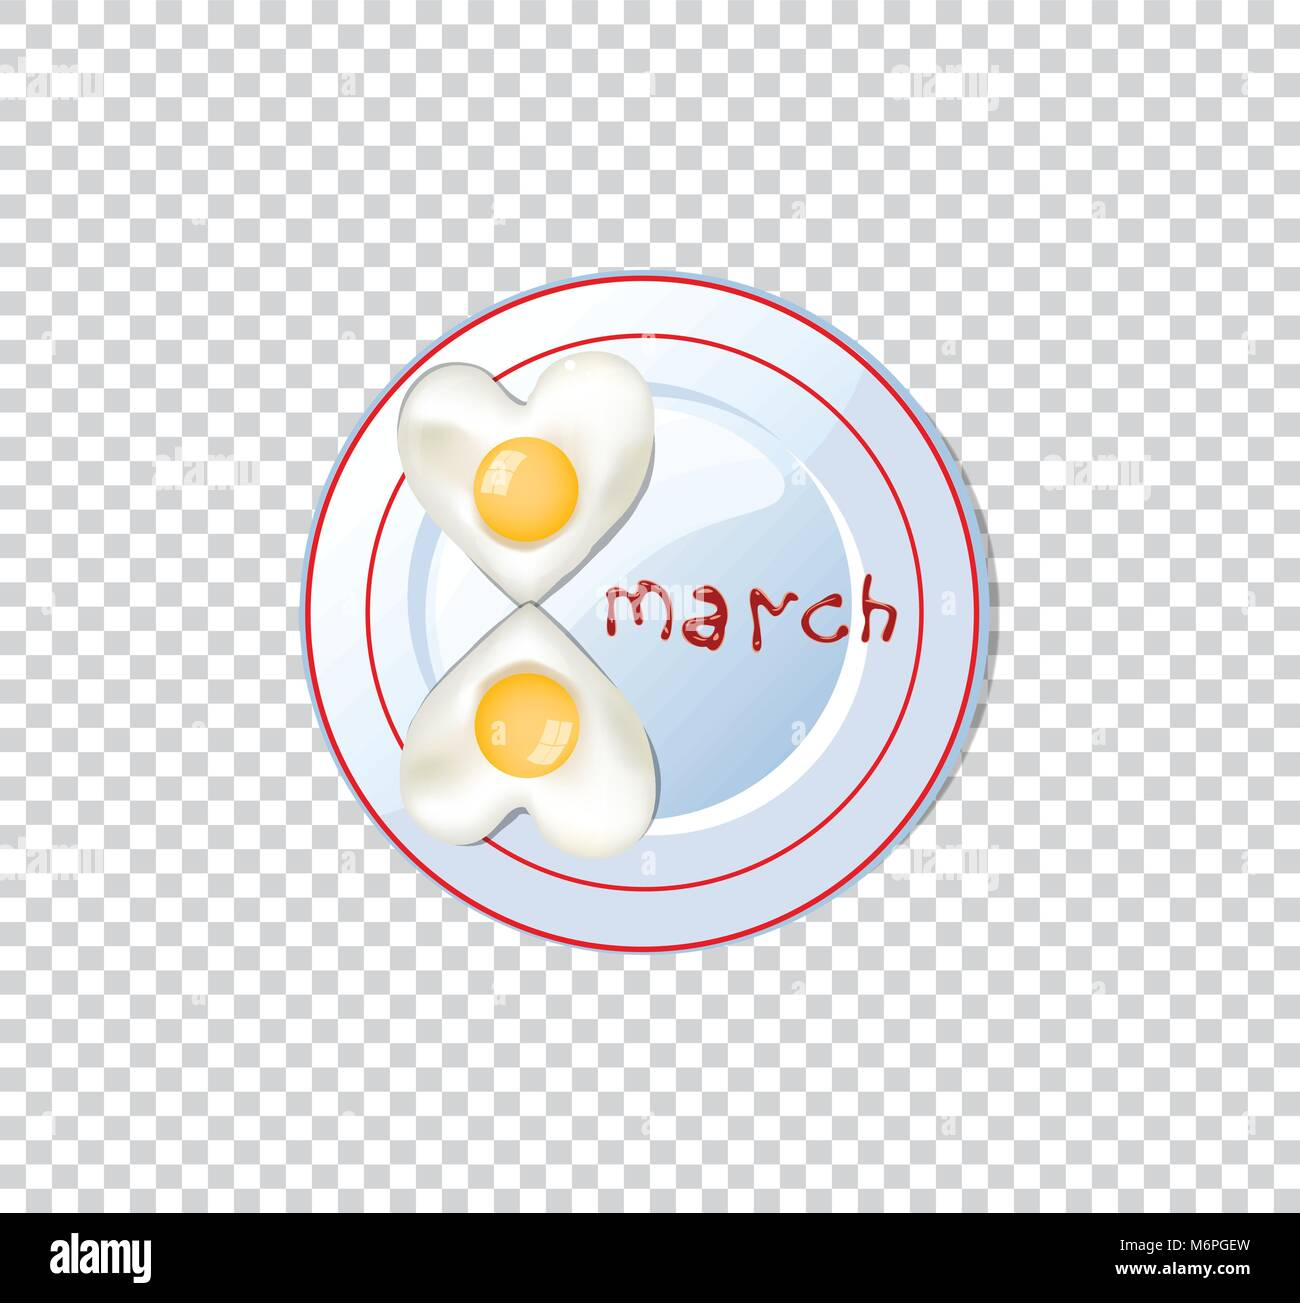 Happy women's day vector illustration, clip art with number eight shaped heart omelette on plate with ketchup - Stock Vector